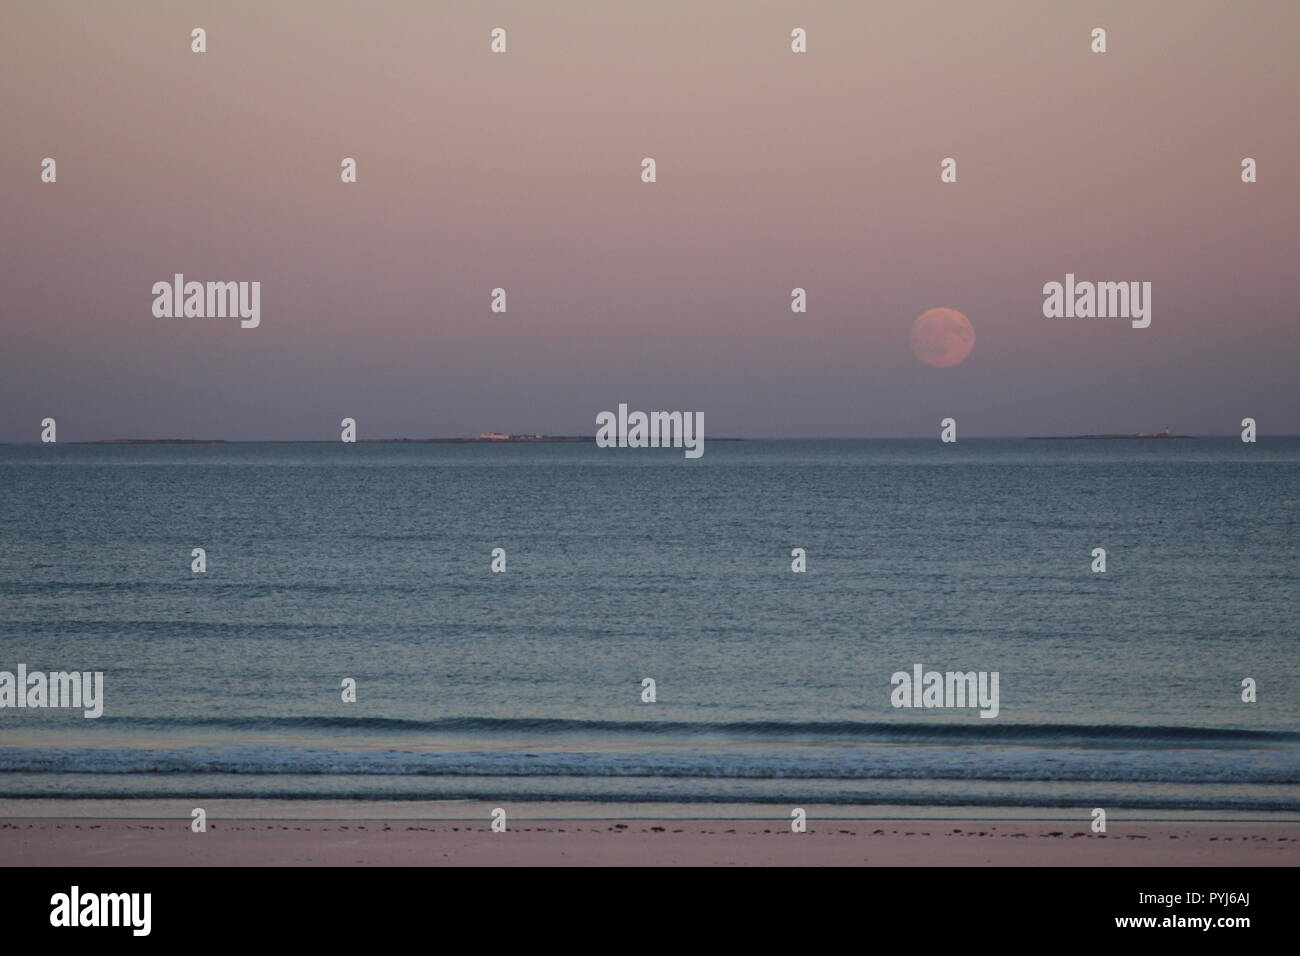 The moon rises in a purple haze floats above the ocean. - Stock Image